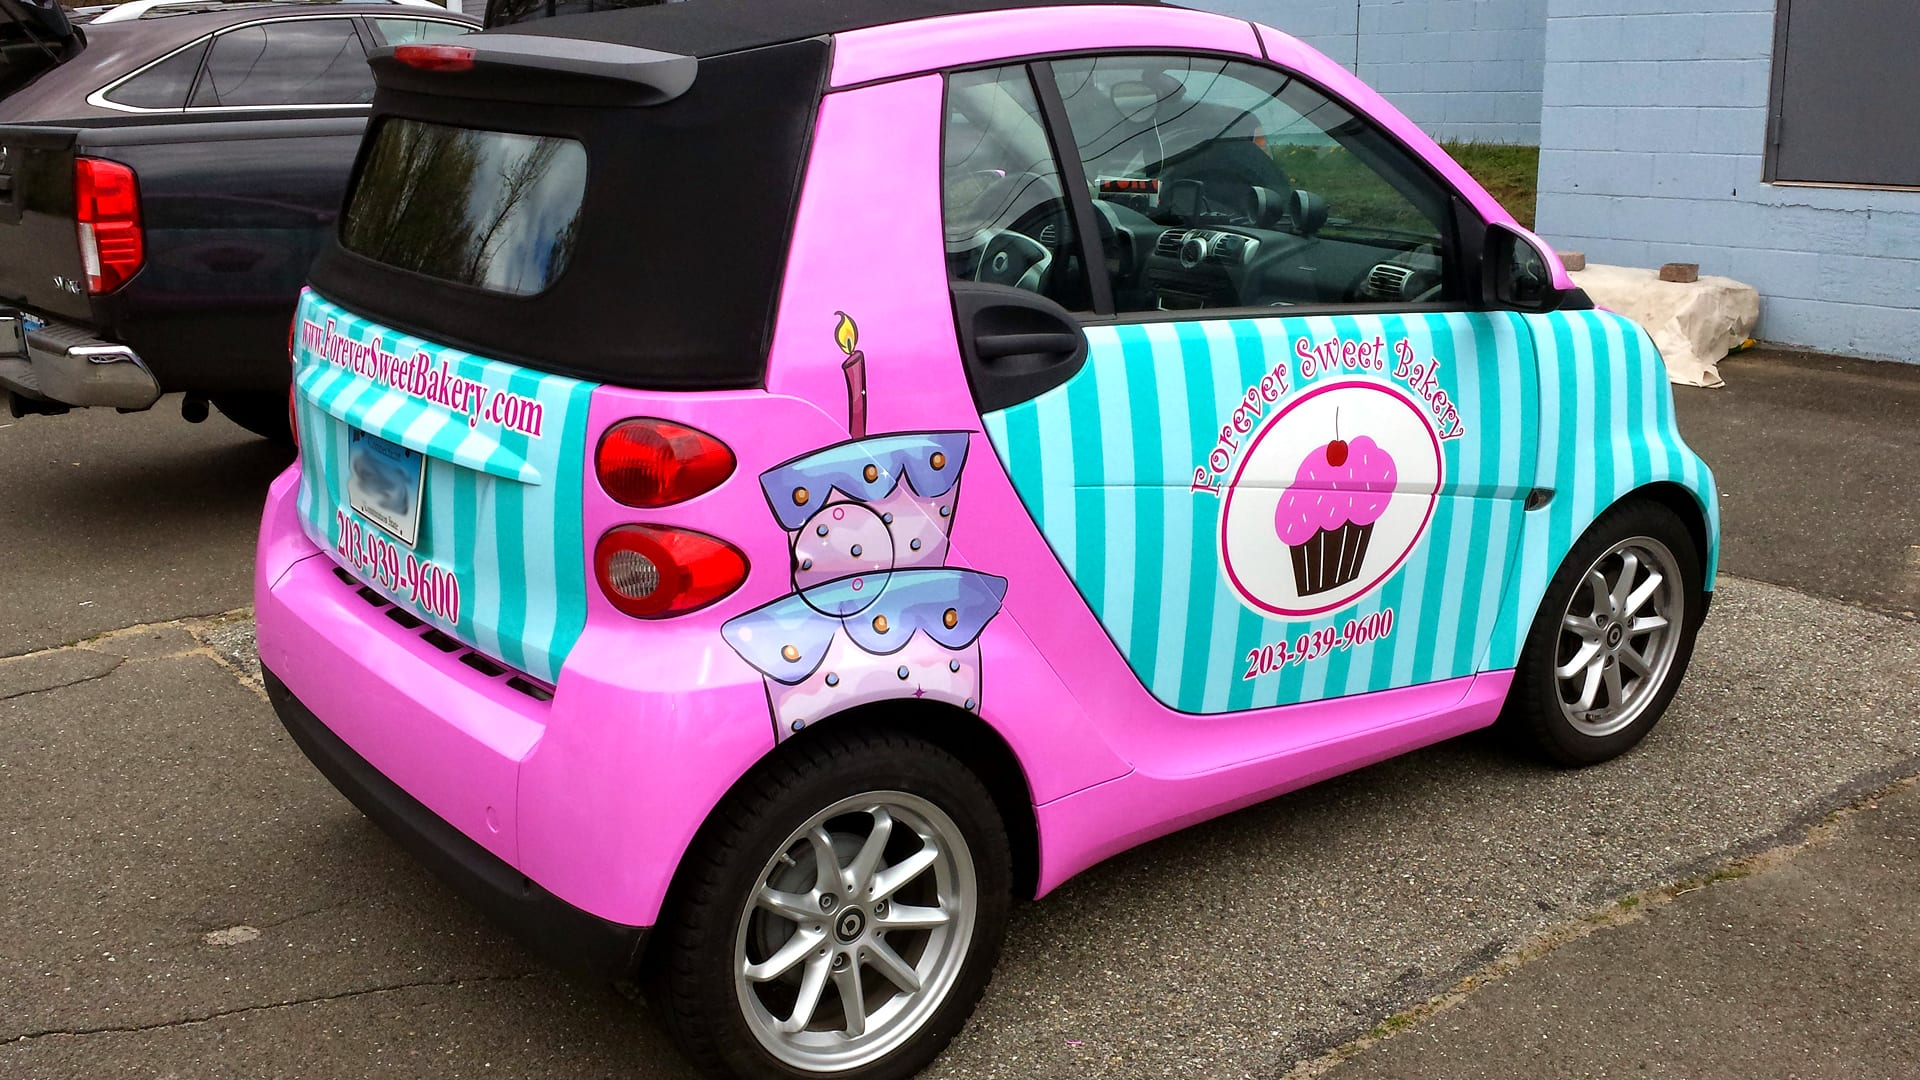 Colorful car wrap advertising a business on a Smart Car